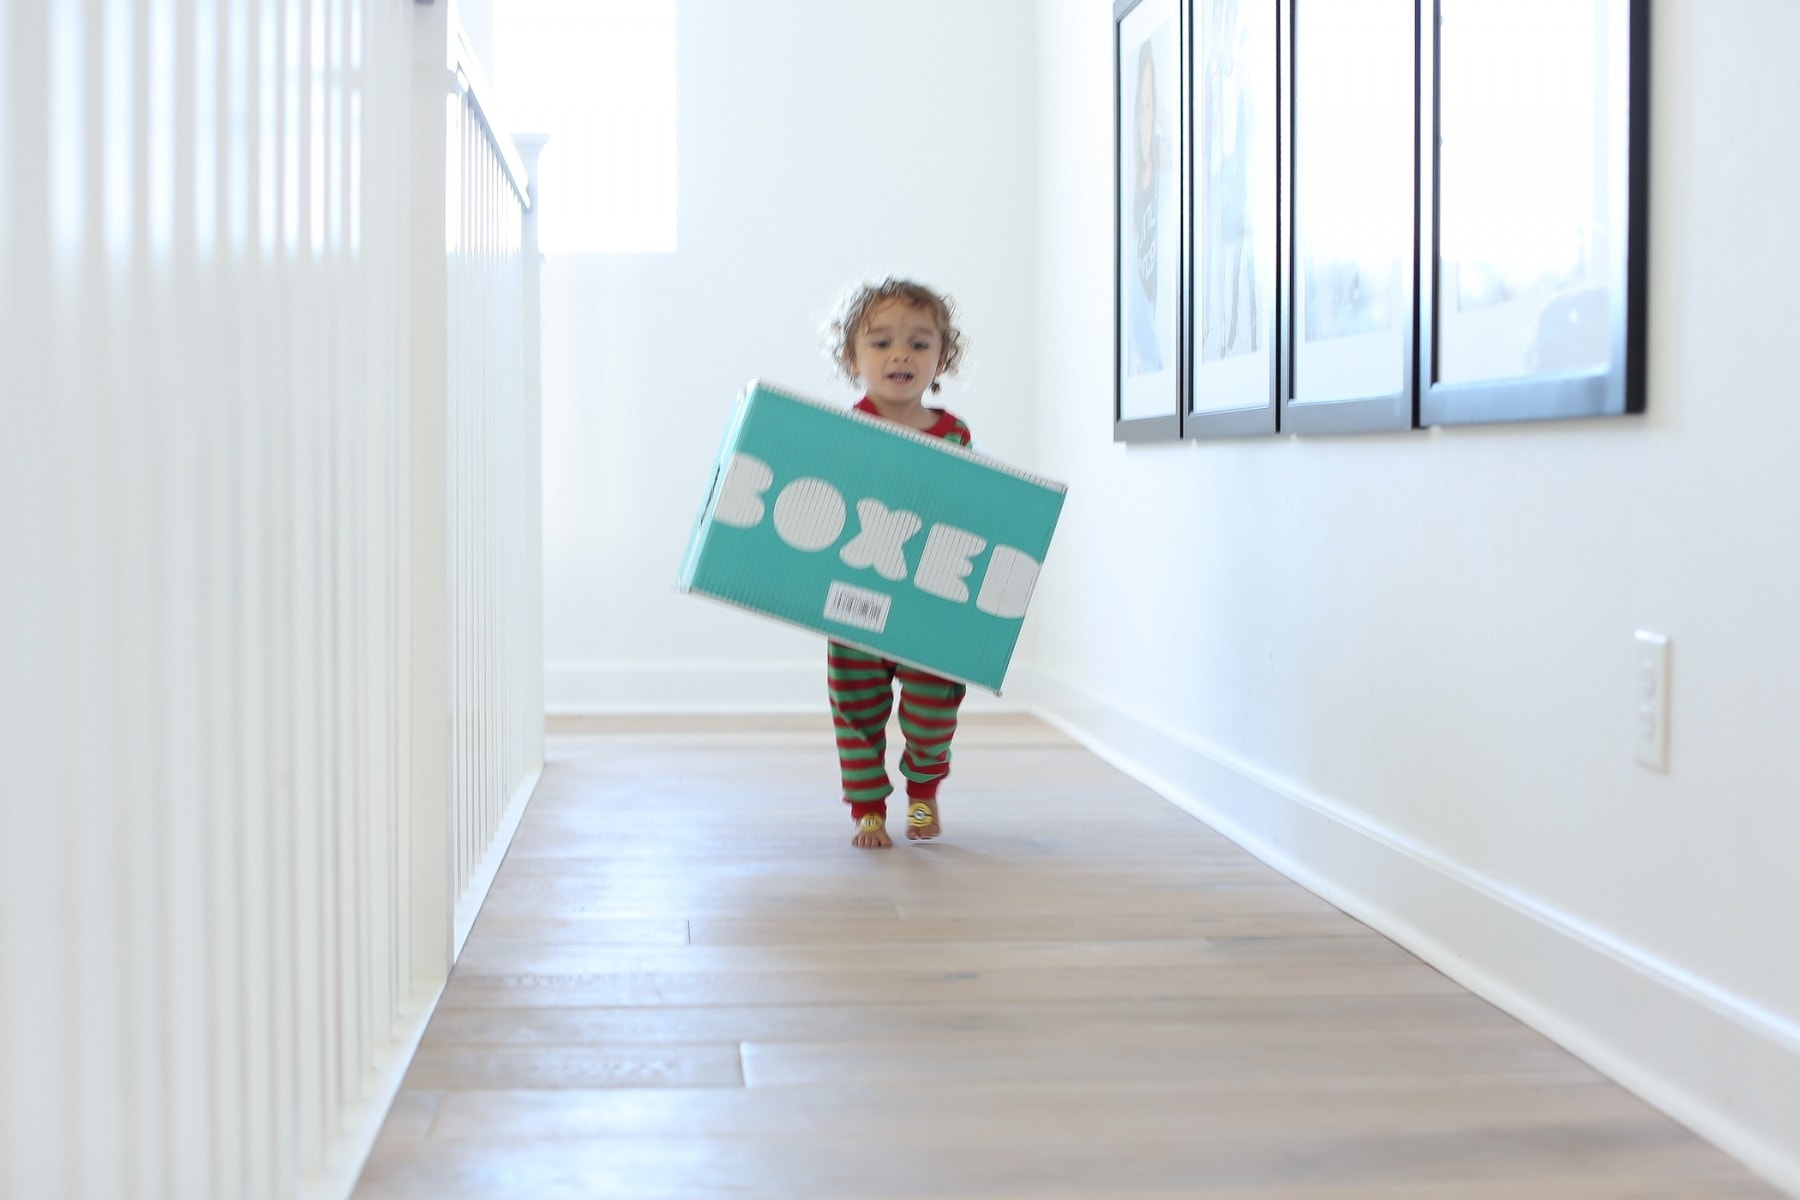 Baby and boxed